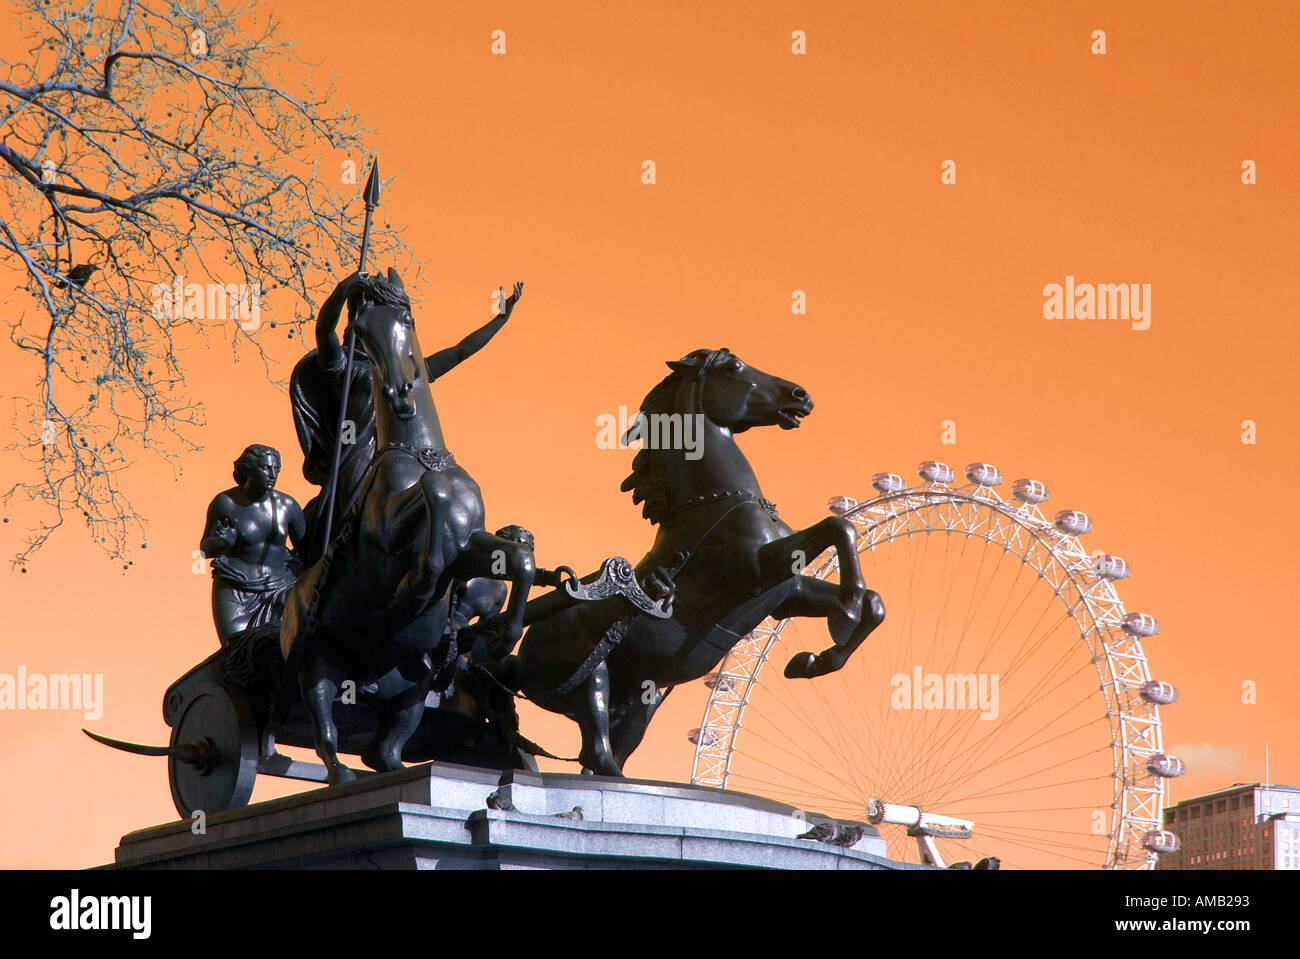 Bronze statue of Queen Boudicca and horse chariot with part of the London eye ferris wheel manipulated colour Stock Photo